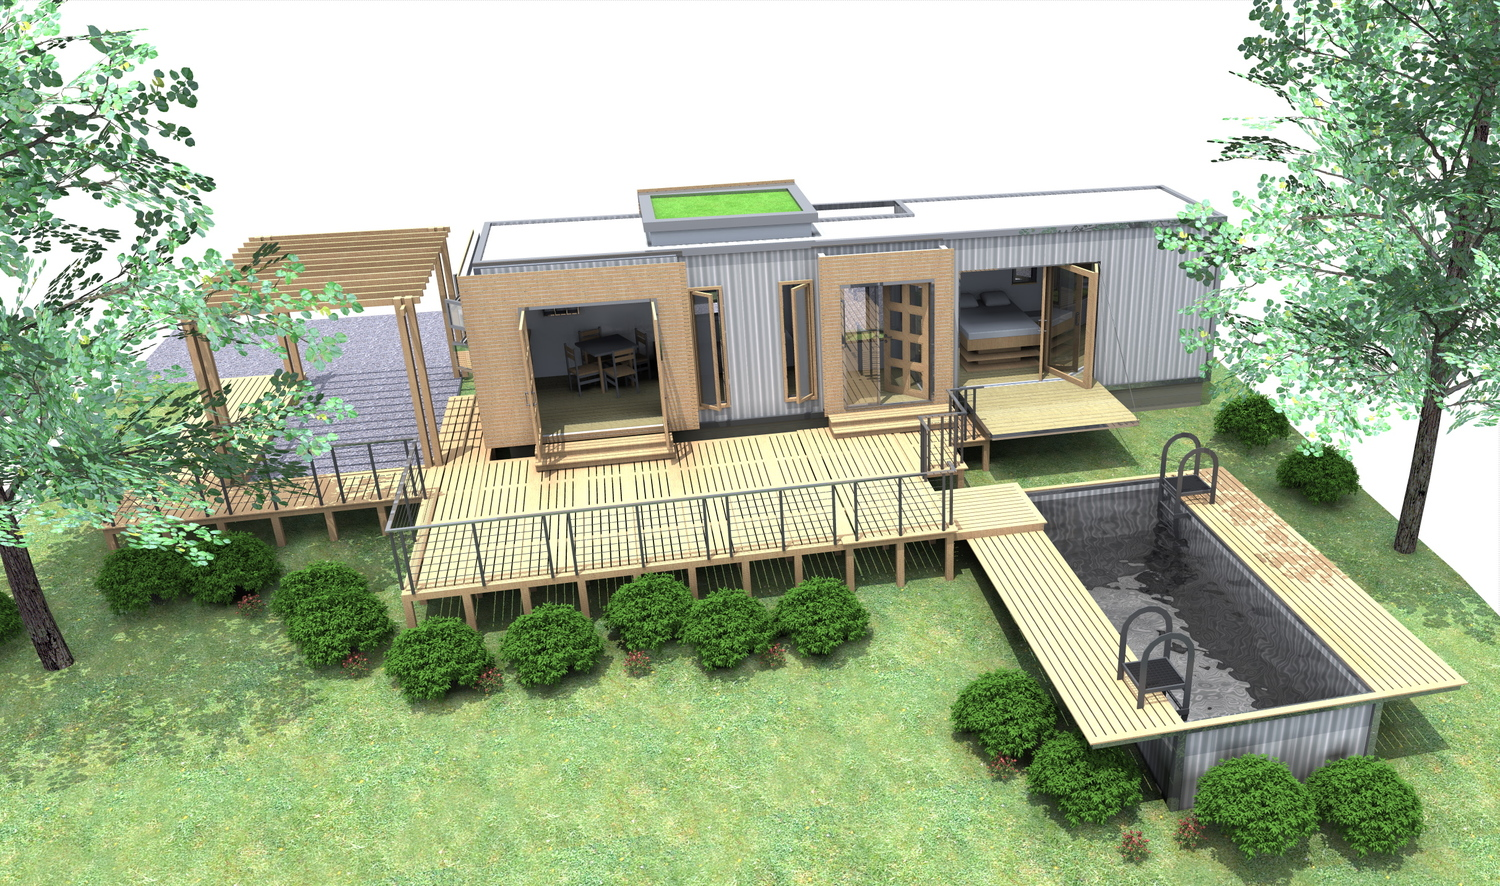 container home designs - Container Home Design Ideas